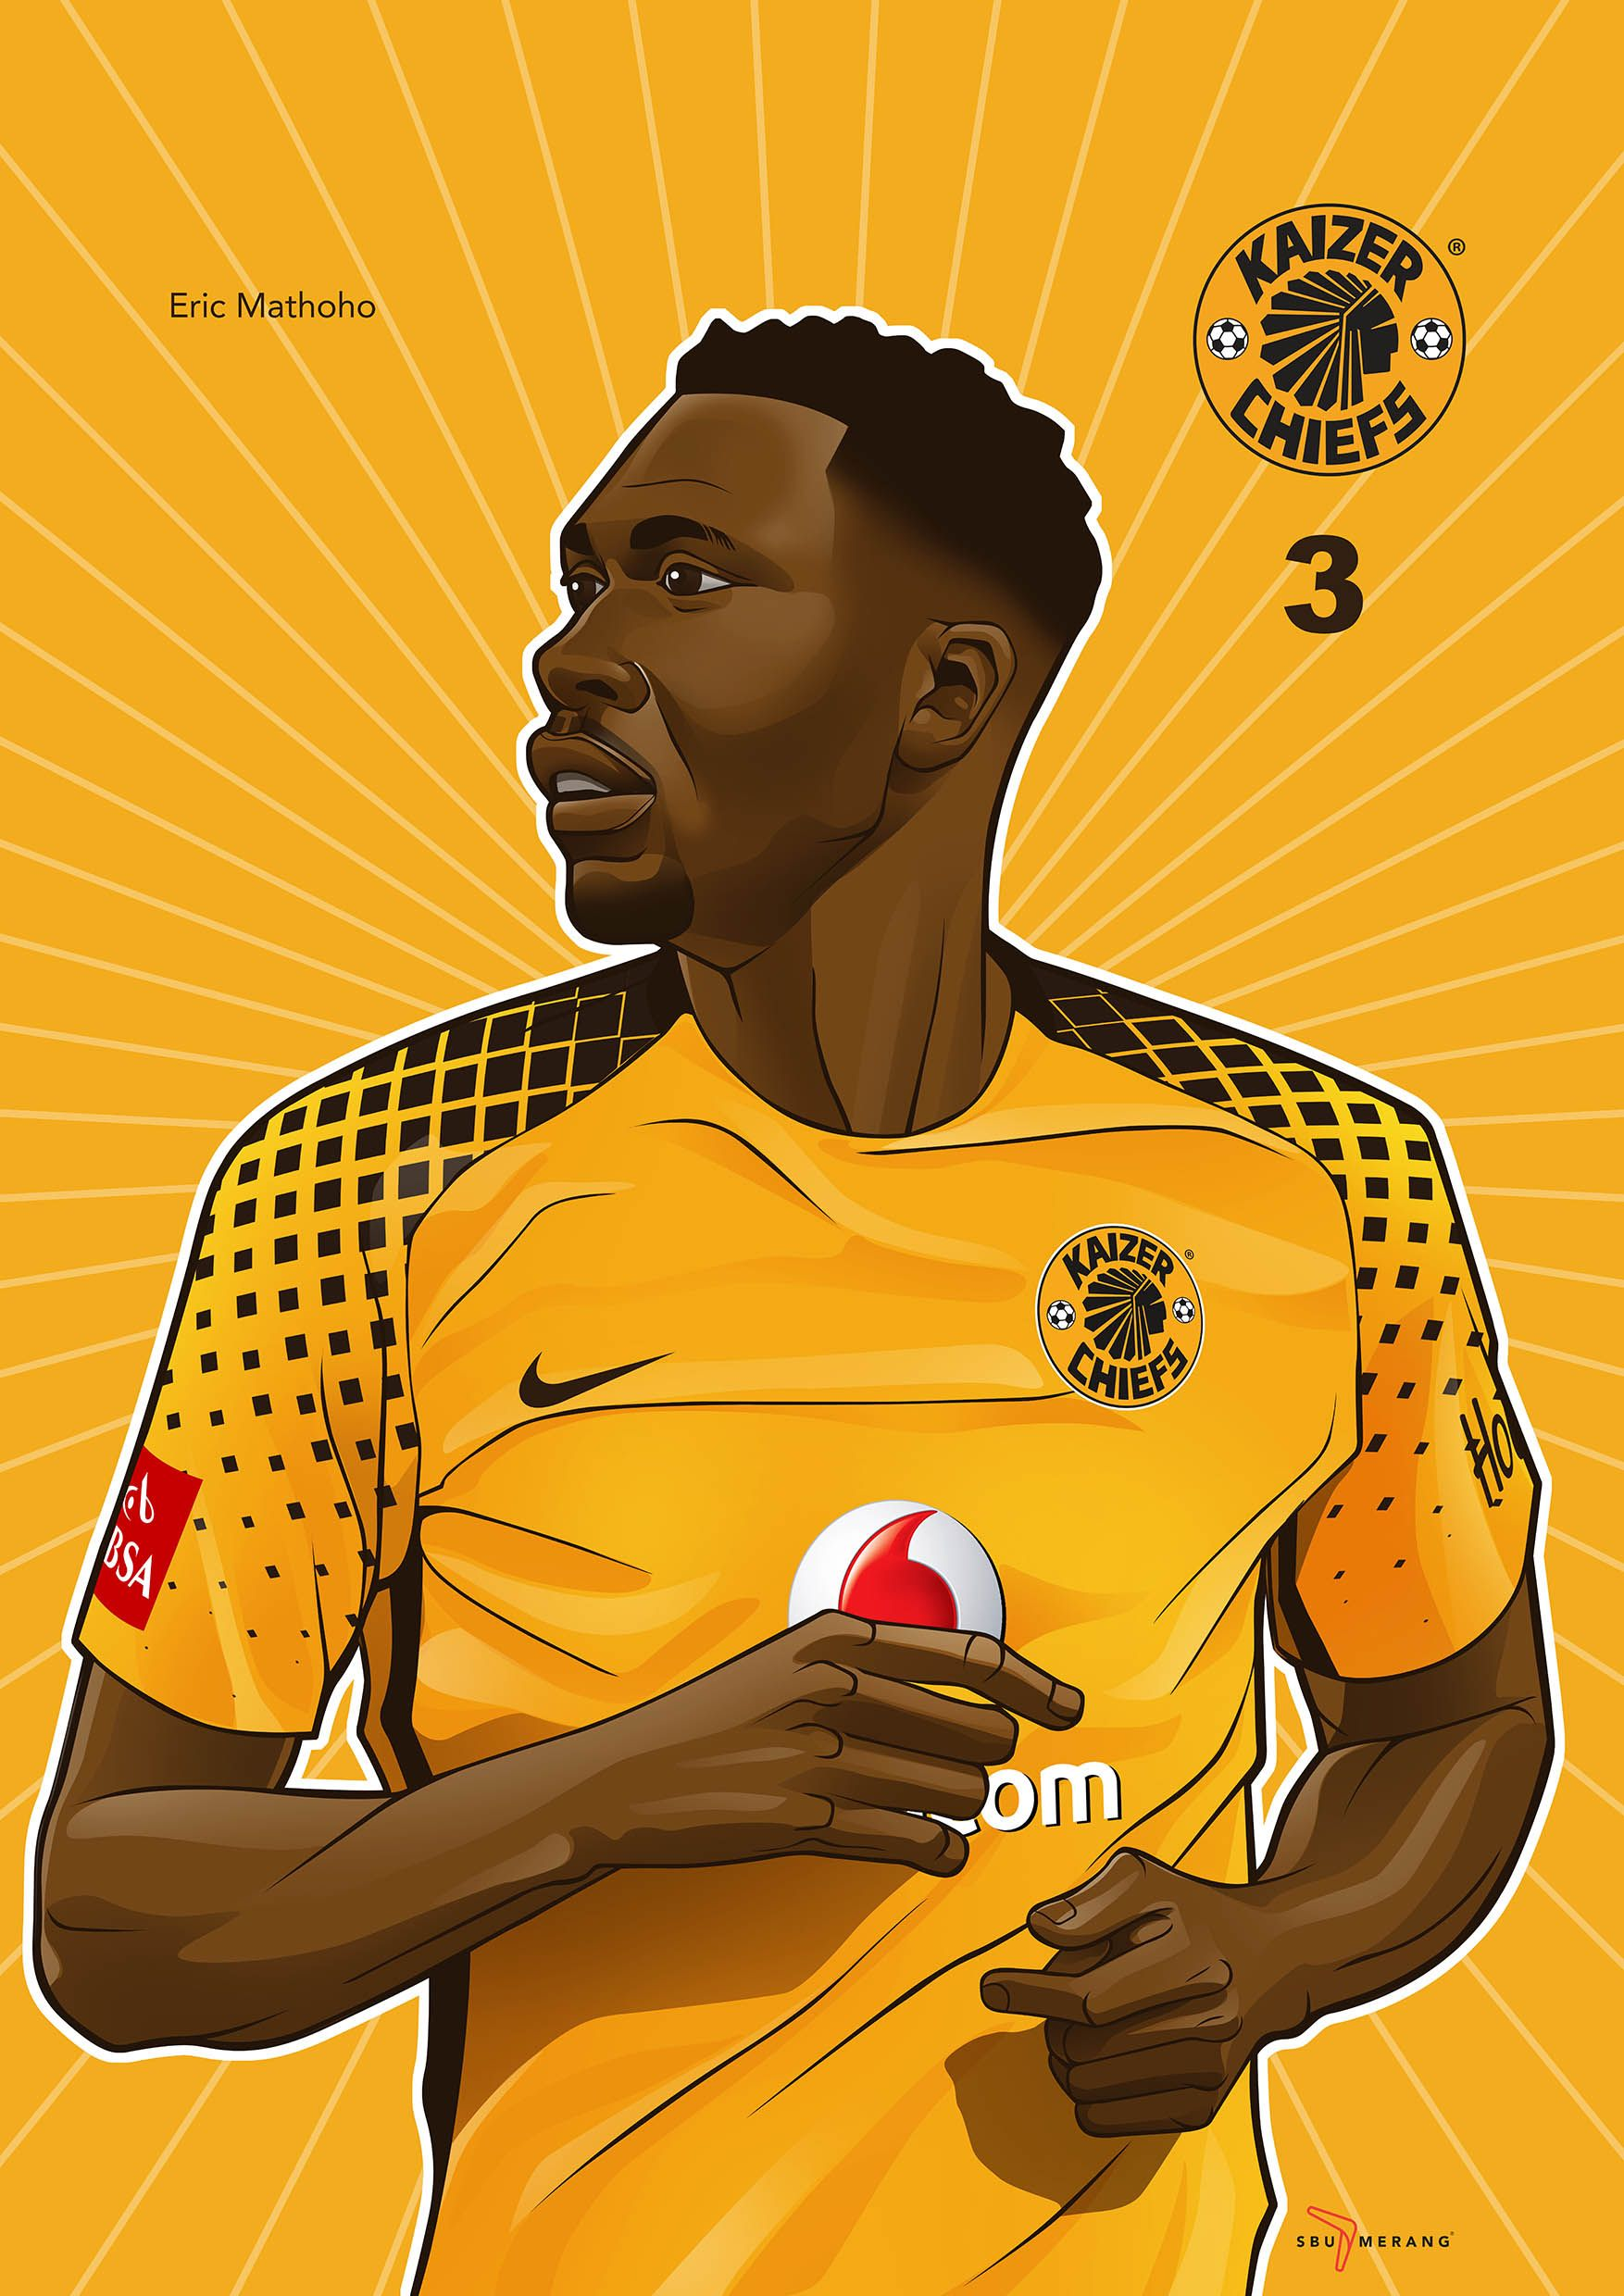 Iwisa Kaizer Chiefs Players Poster Collection Eric Mothoho Kaizer Chiefs Chiefs Wallpaper Soccer Team